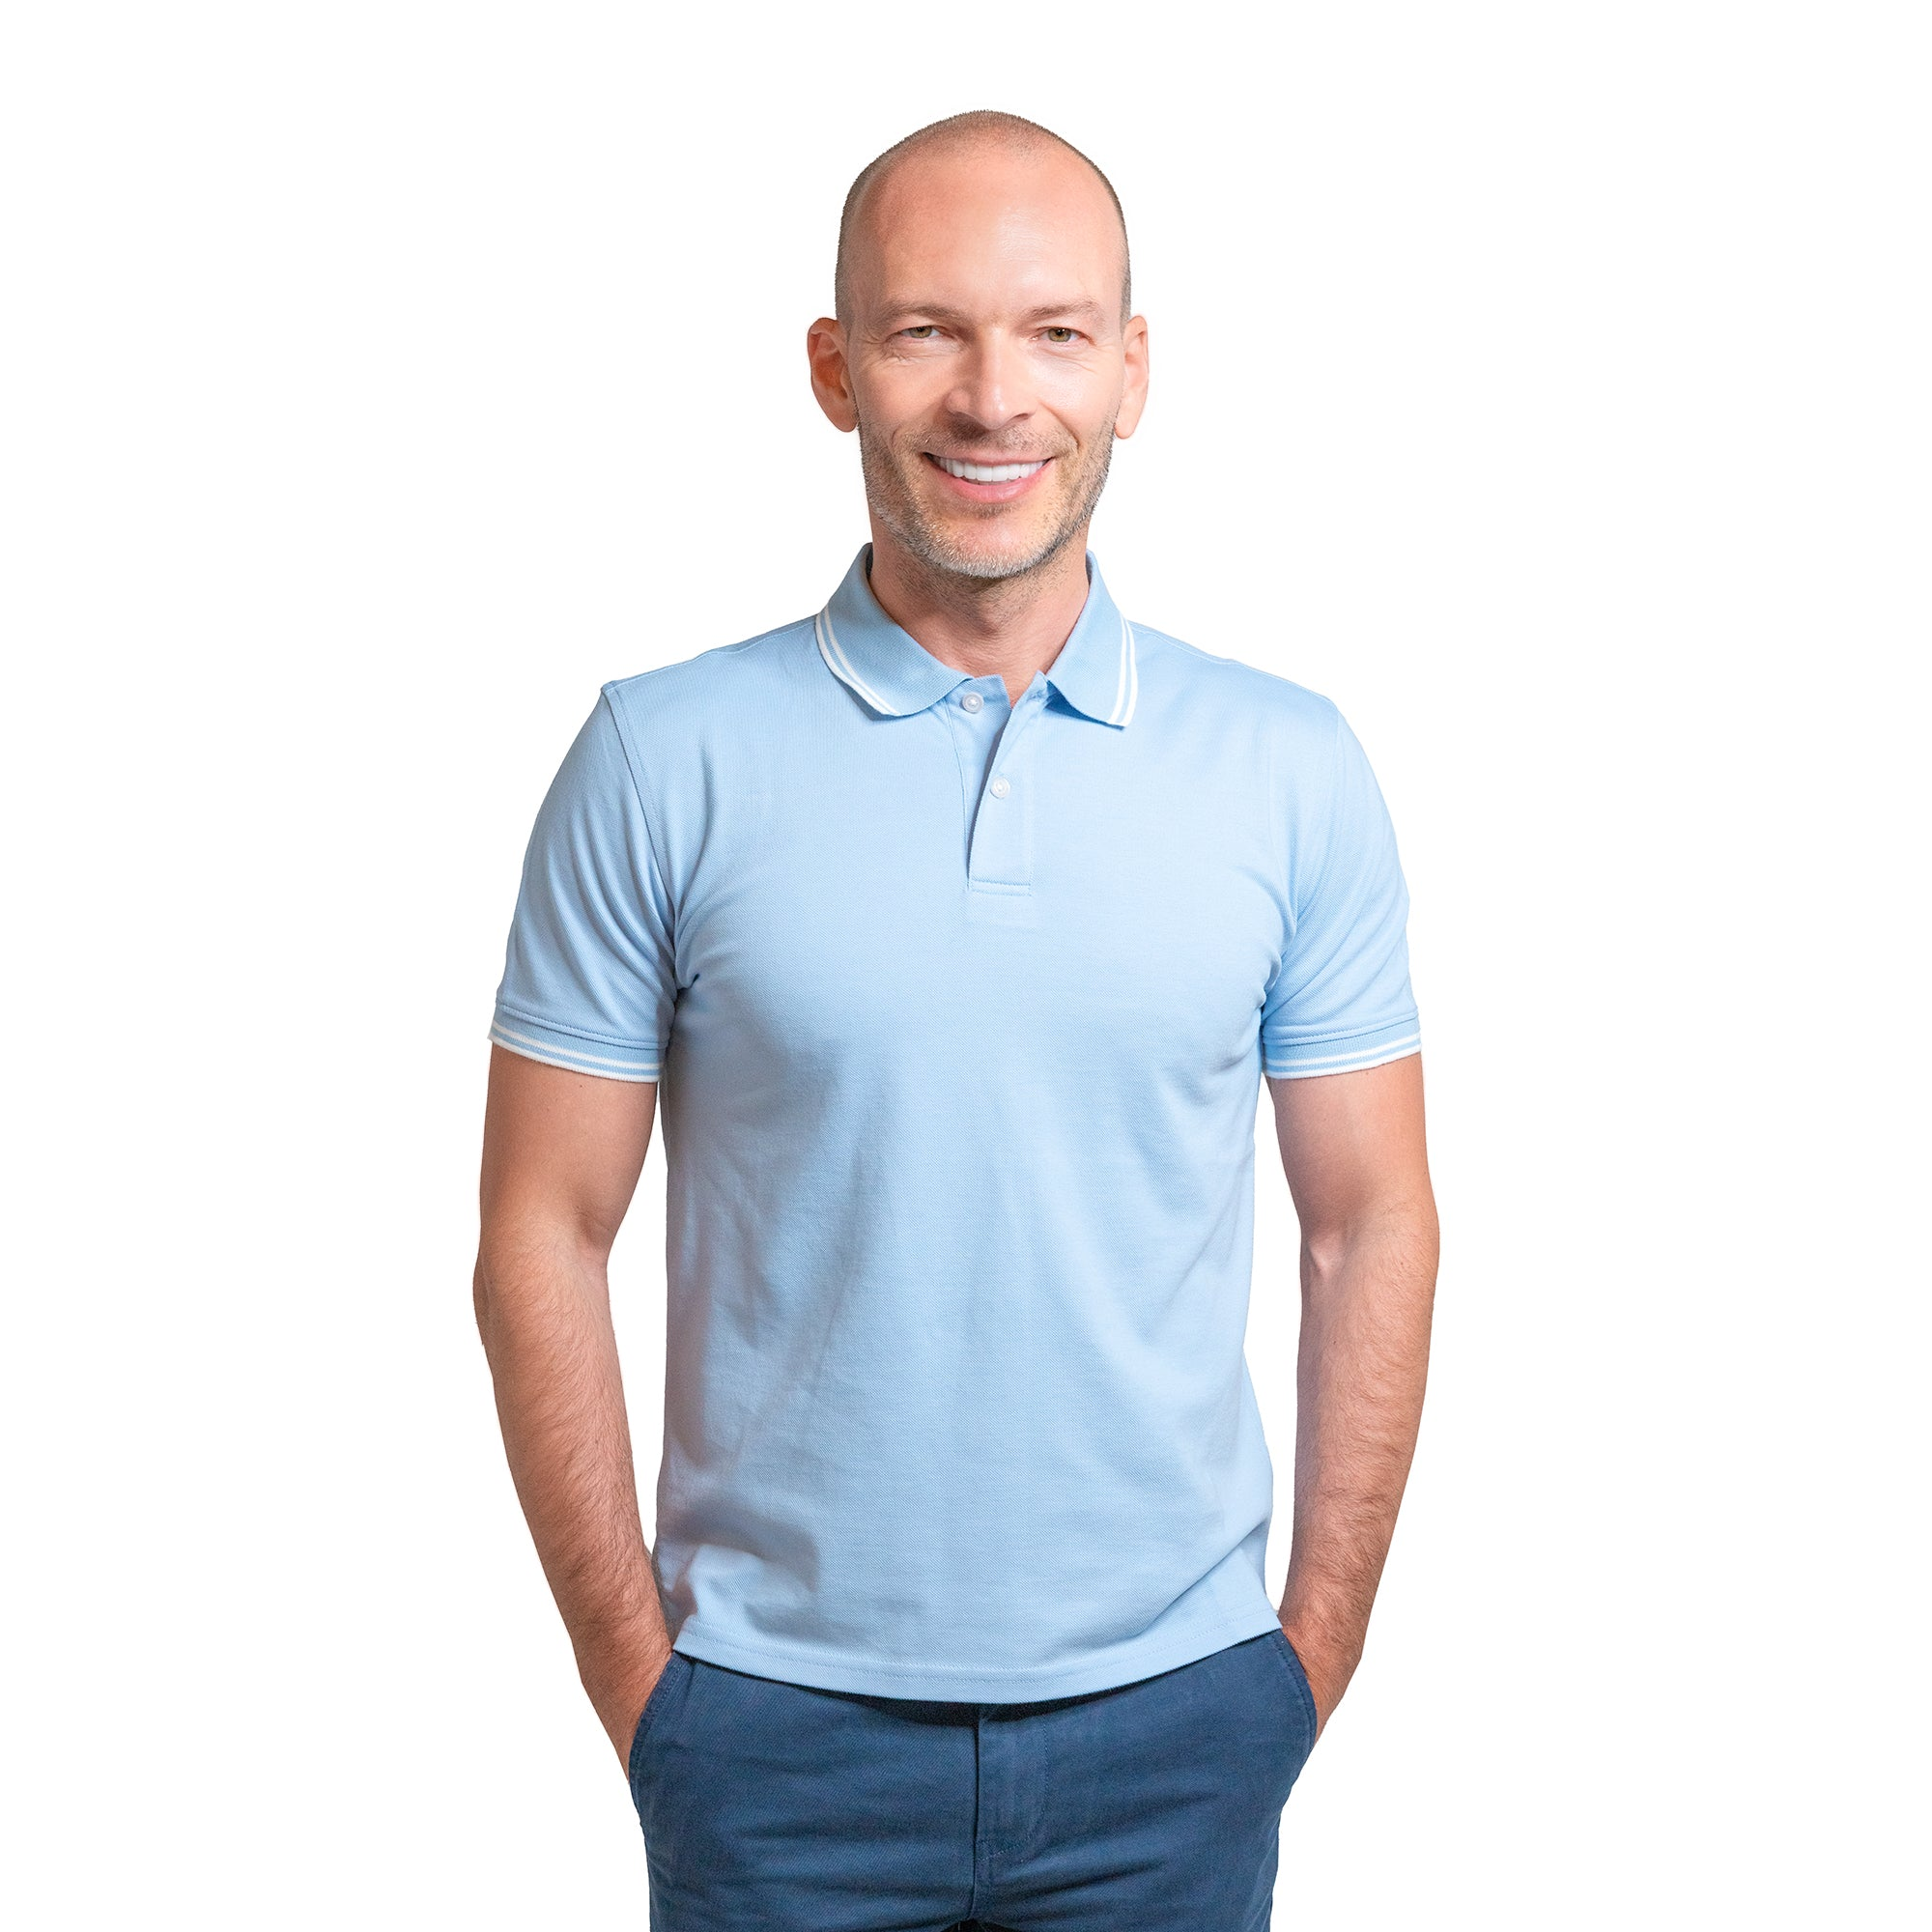 James Polo Shirt - Pale Blue Tipped